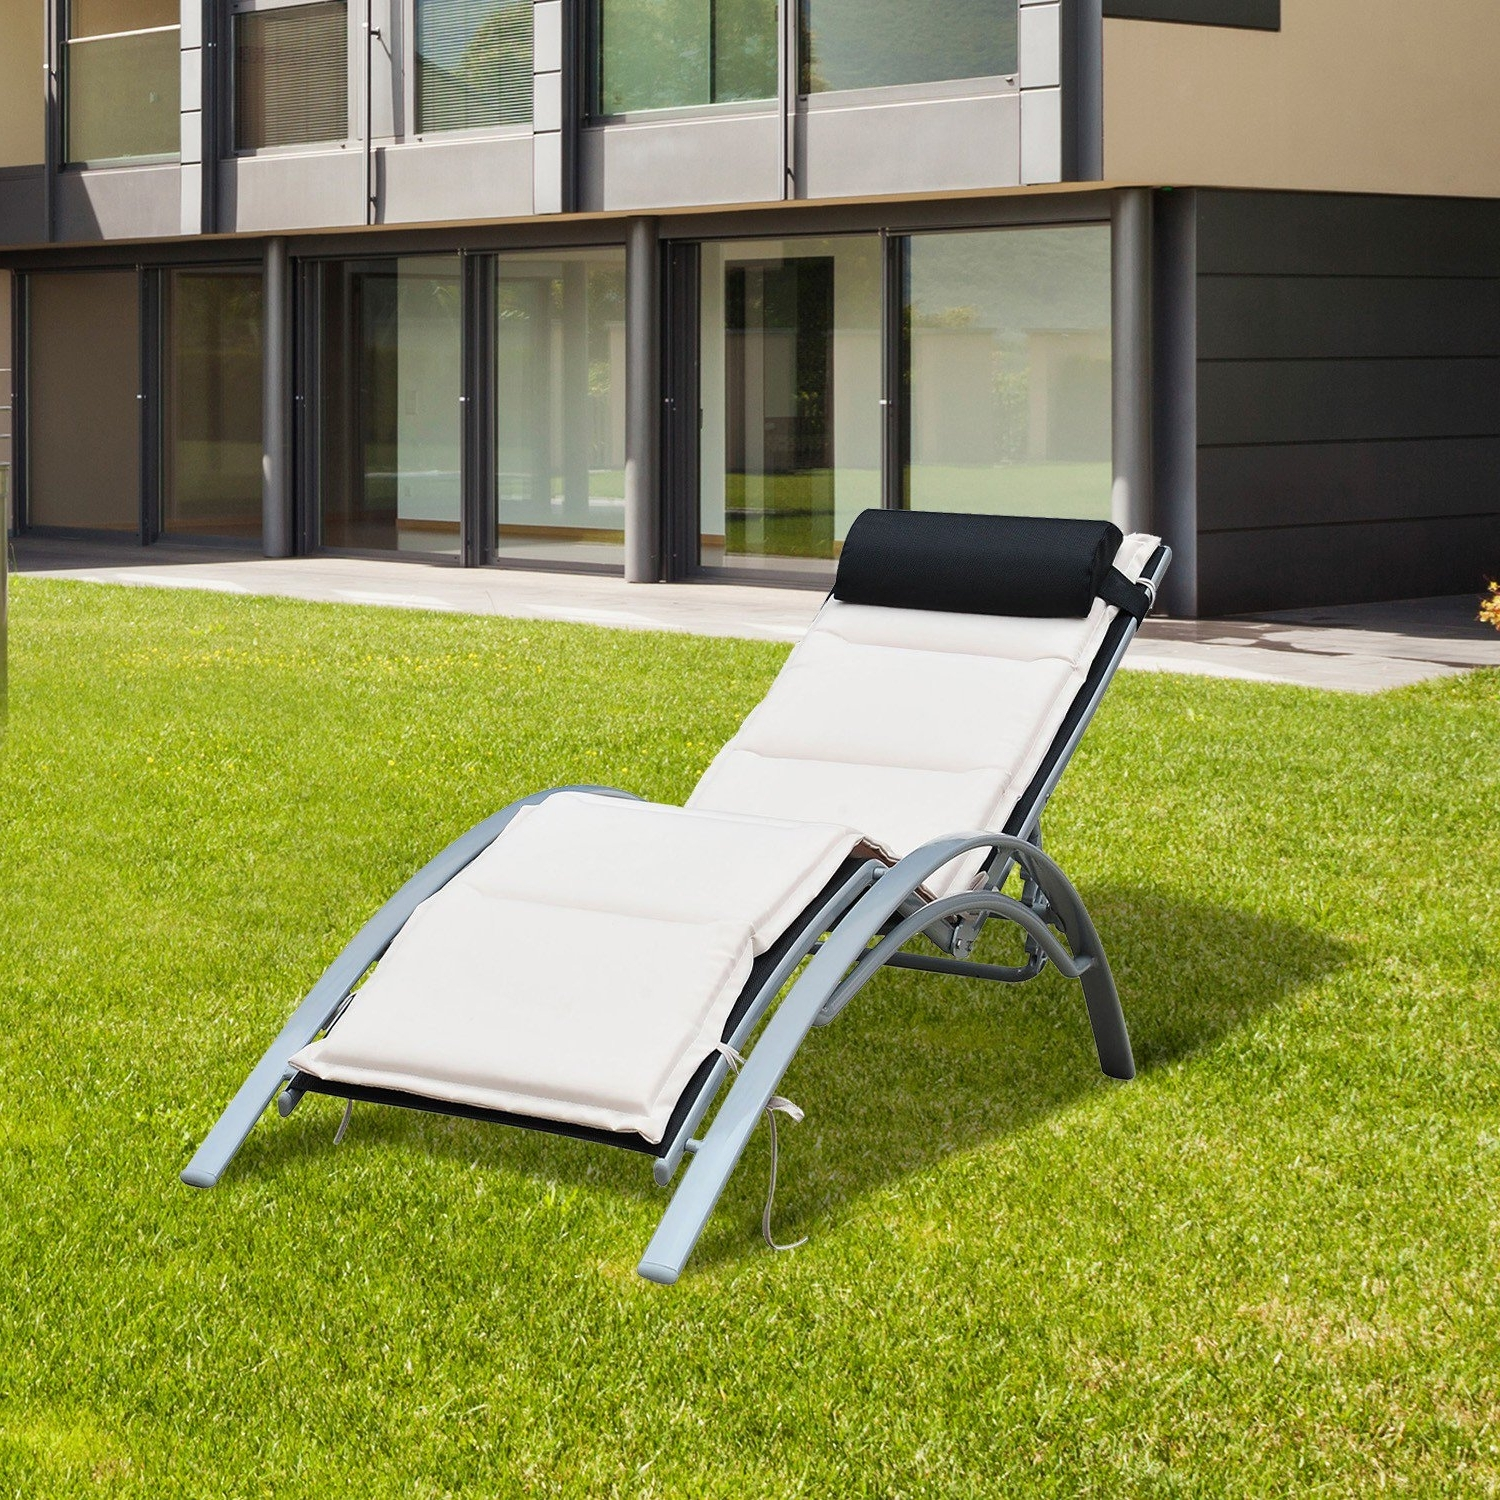 Most Current Outsunny Patio Reclining Chaise Lounge Chair With Cushion – Black For Reclining Chaise Lounges (View 5 of 15)